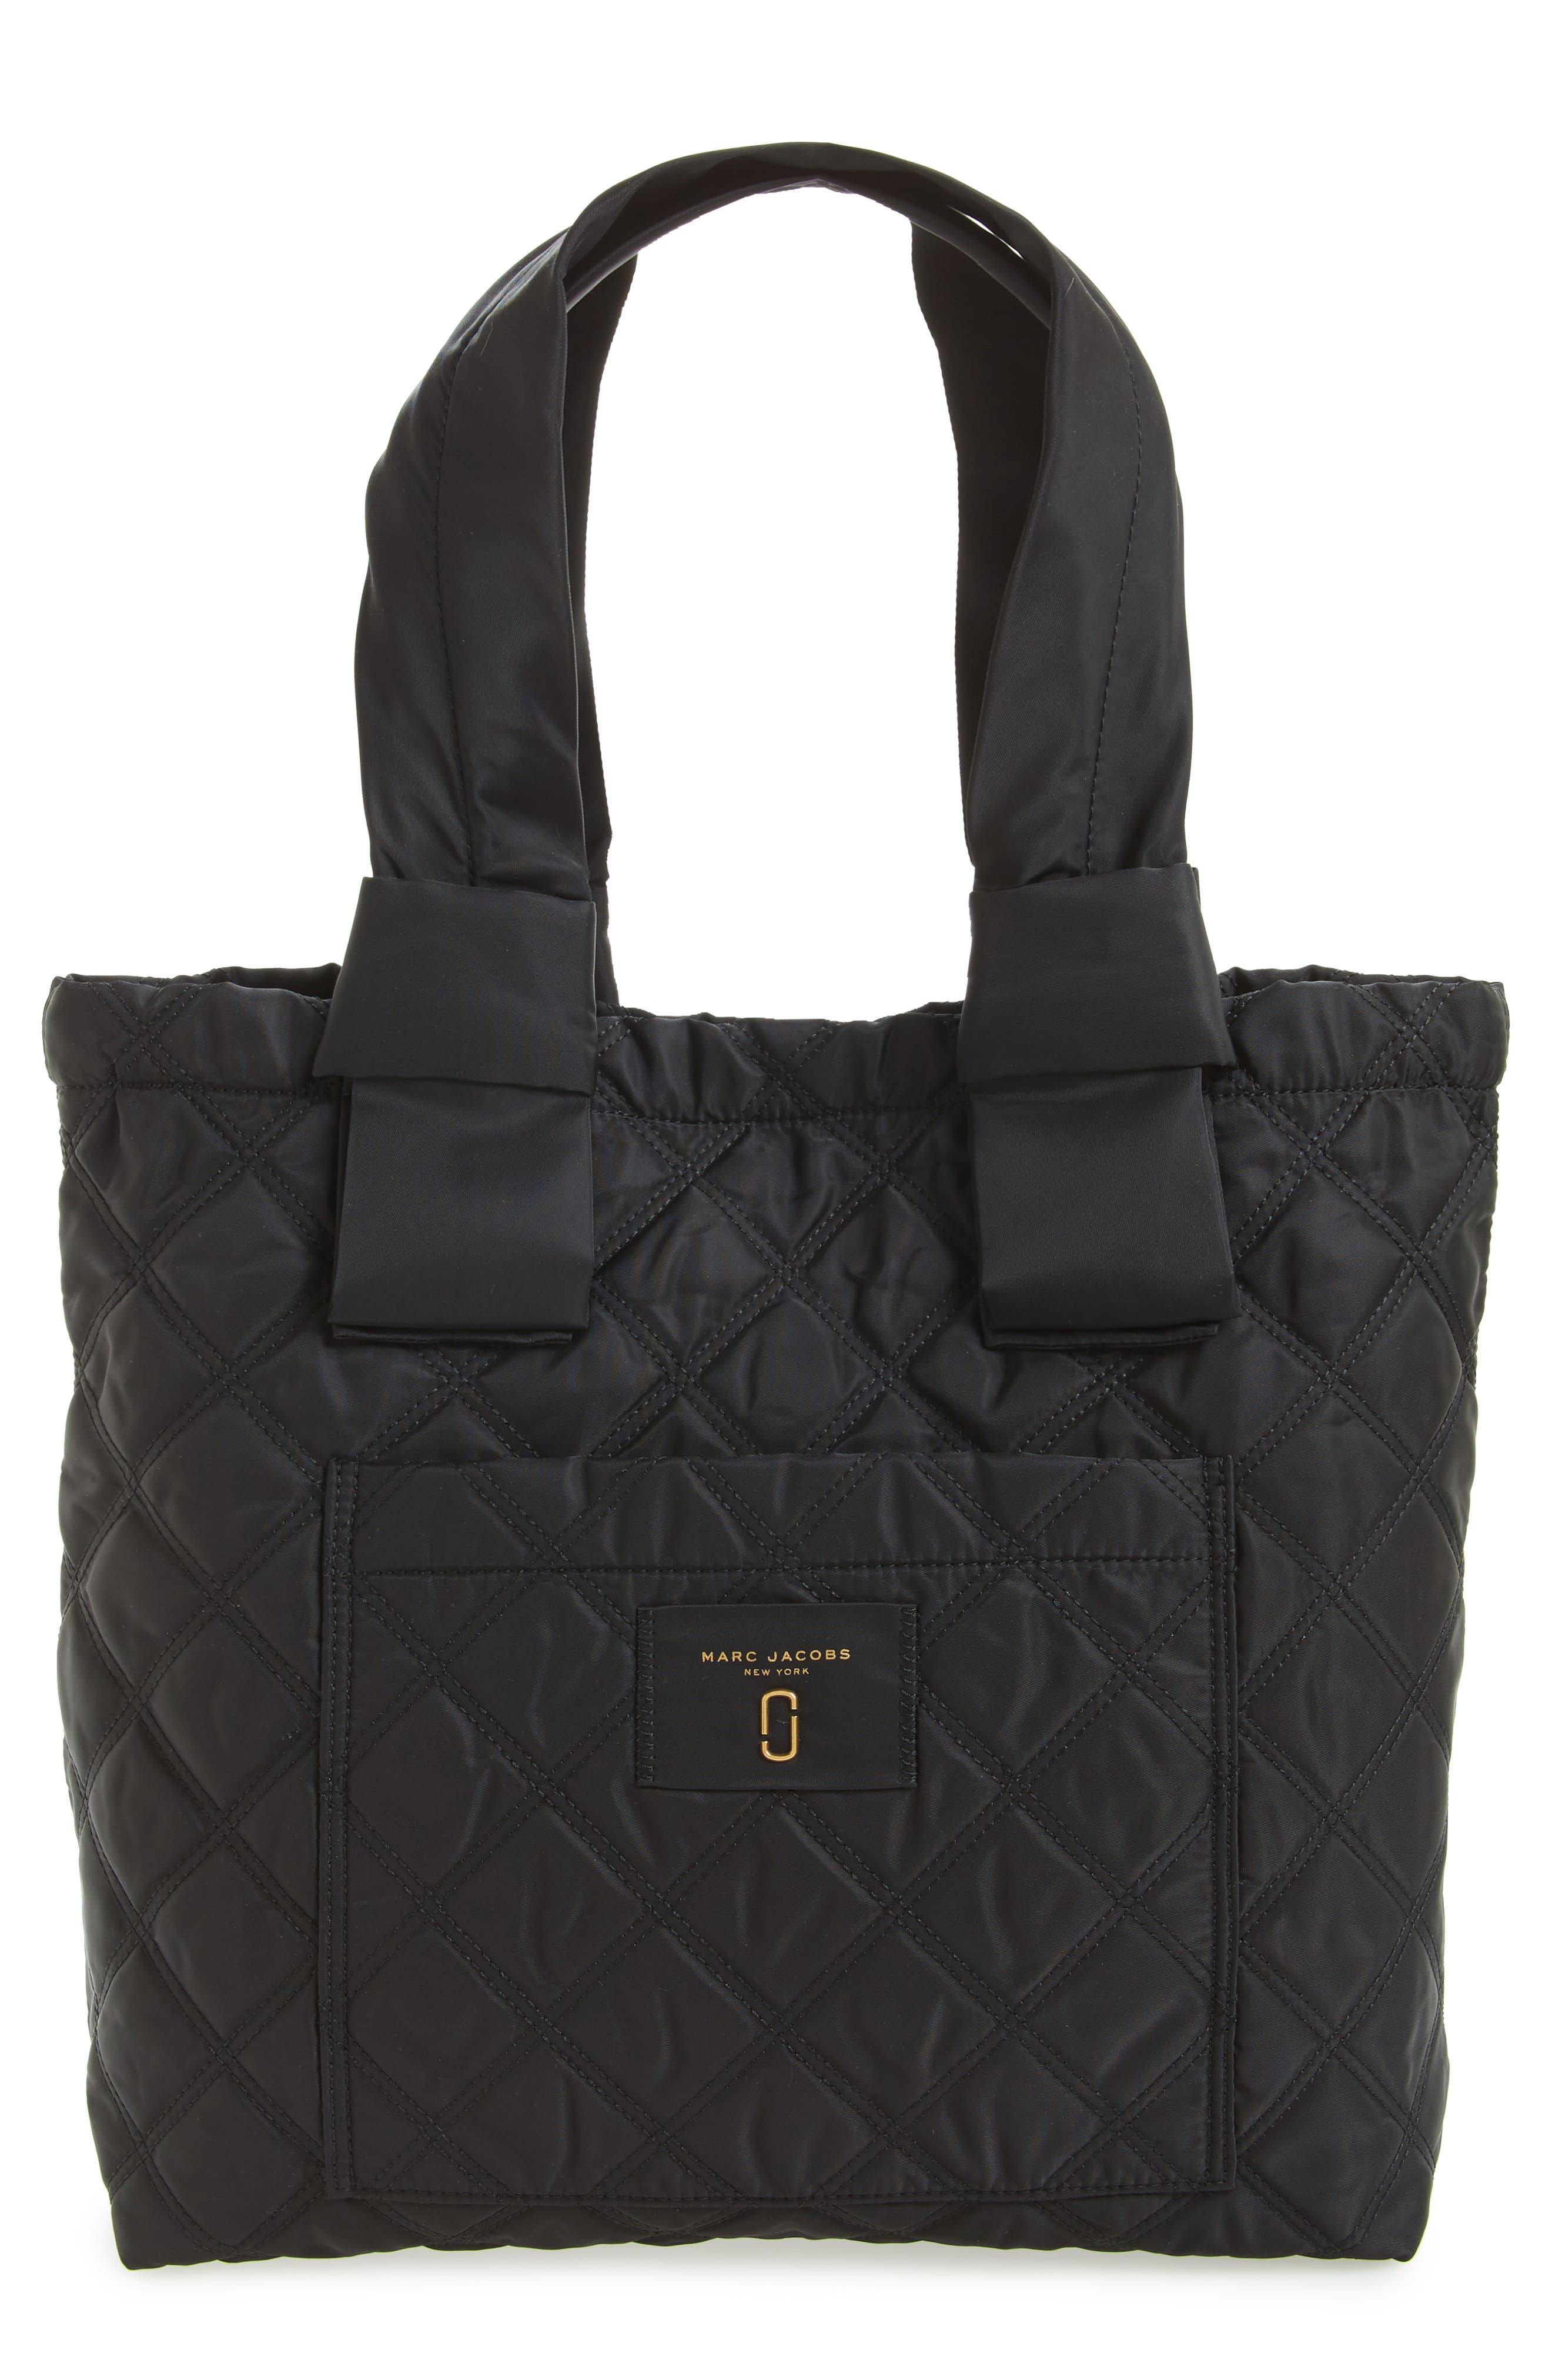 Alternate Image 1 Selected - MARC JACOBS Knot Tote